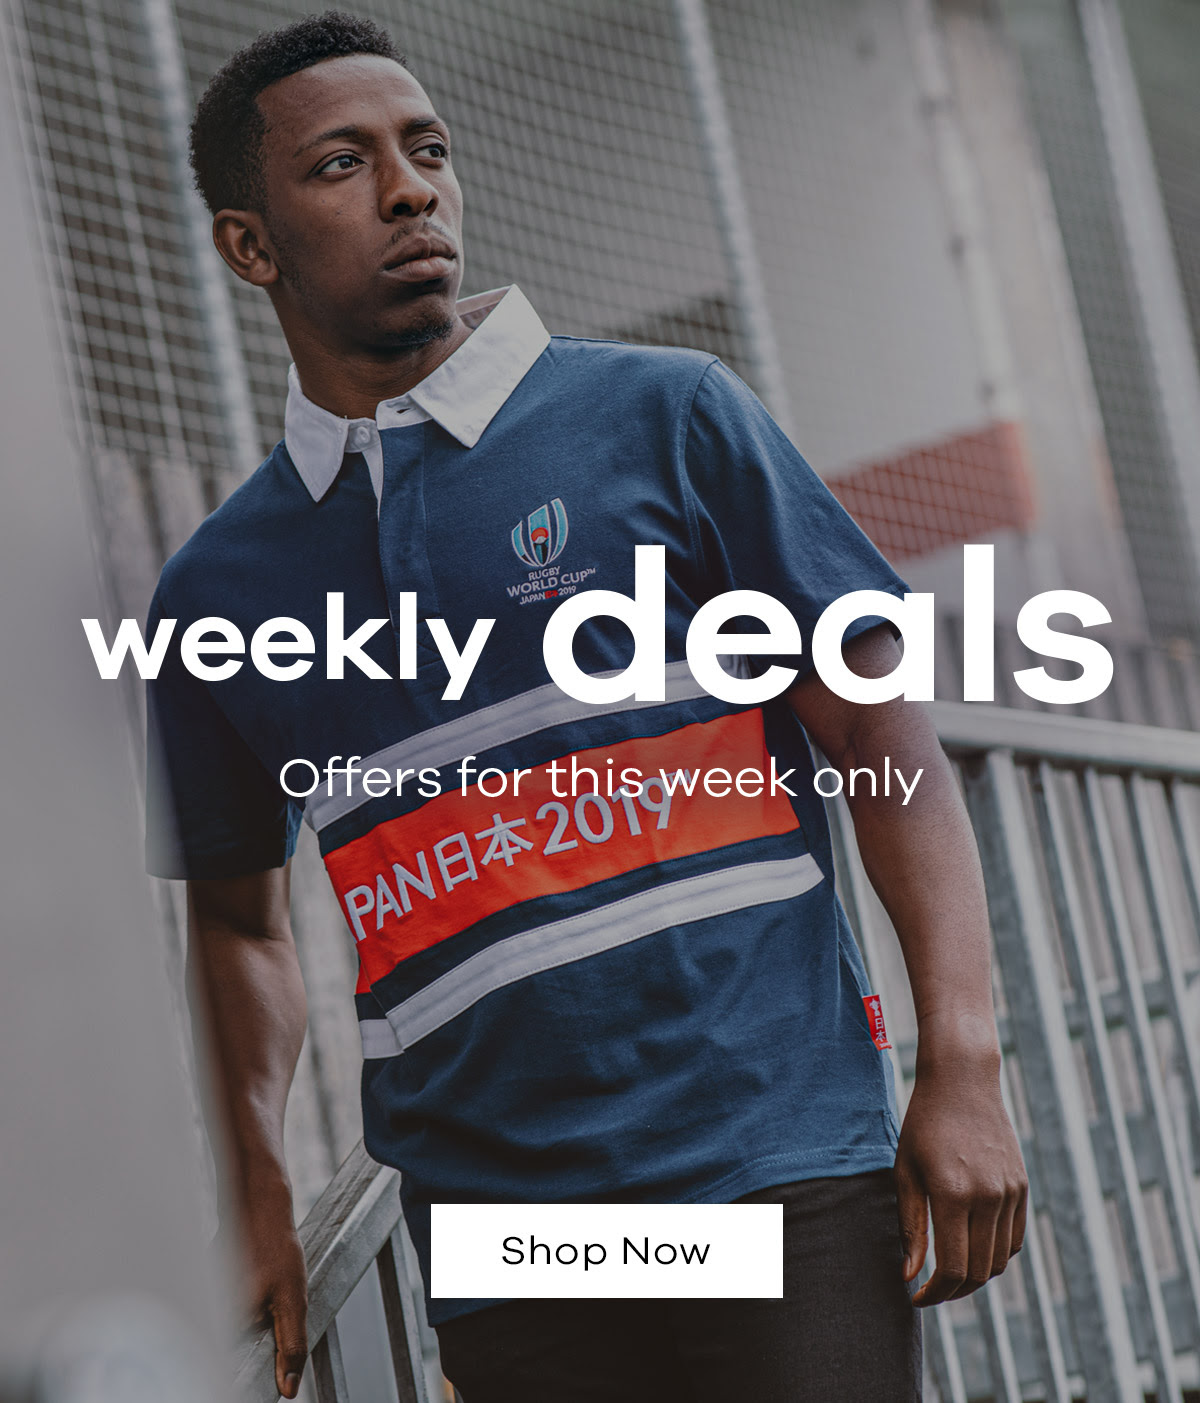 Lovell Rugby - Exclusive Deals For This Week Only...